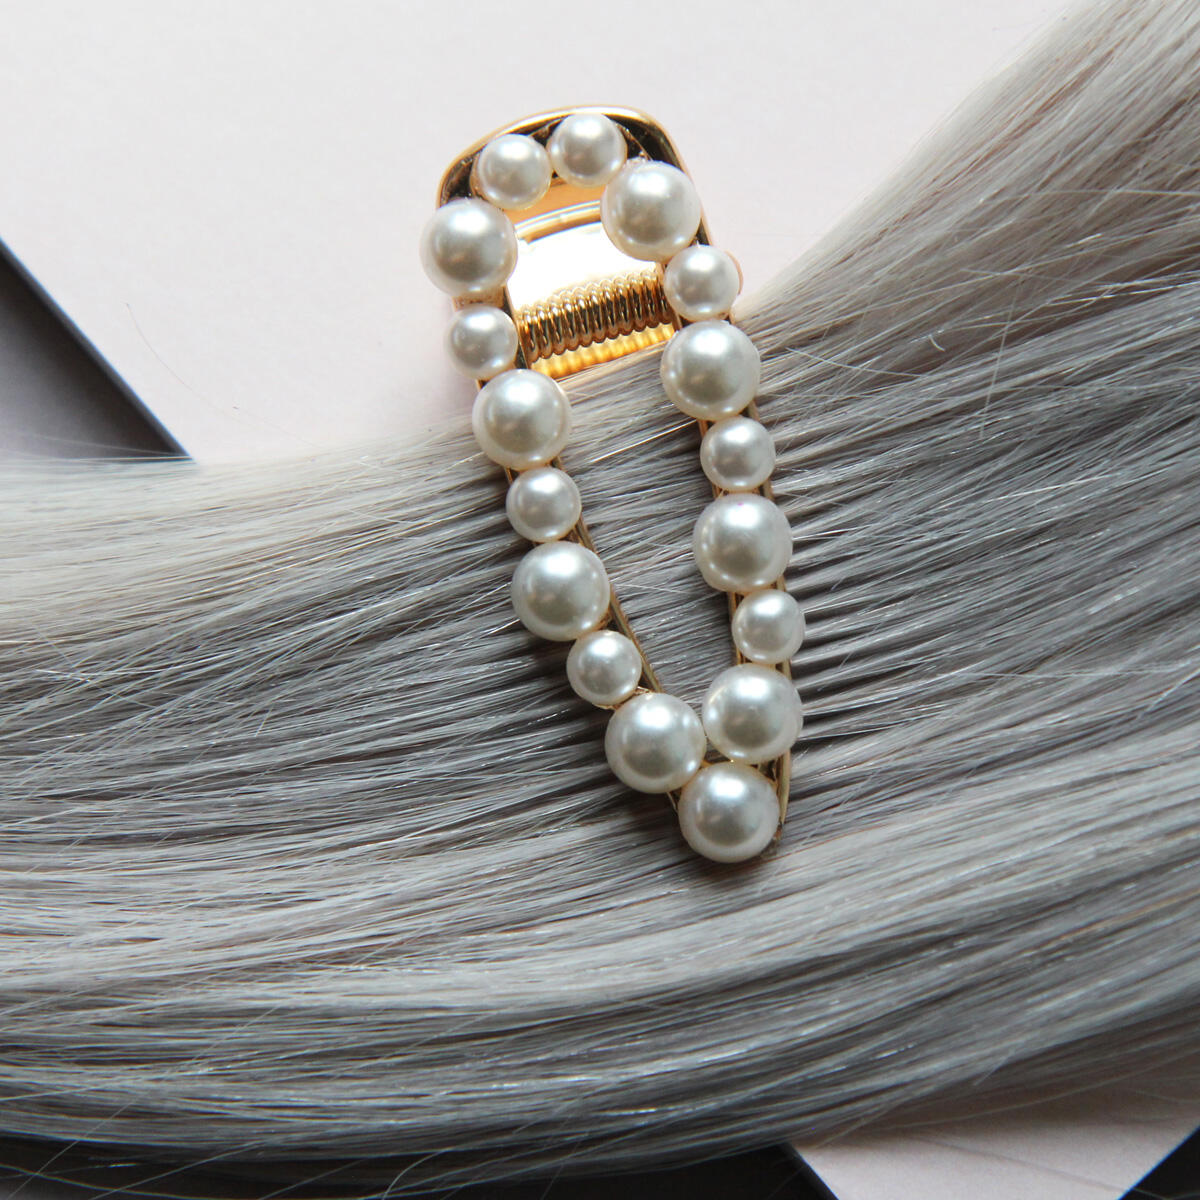 Gold colour hair slide with pearls Pearl Collection no. 15 null